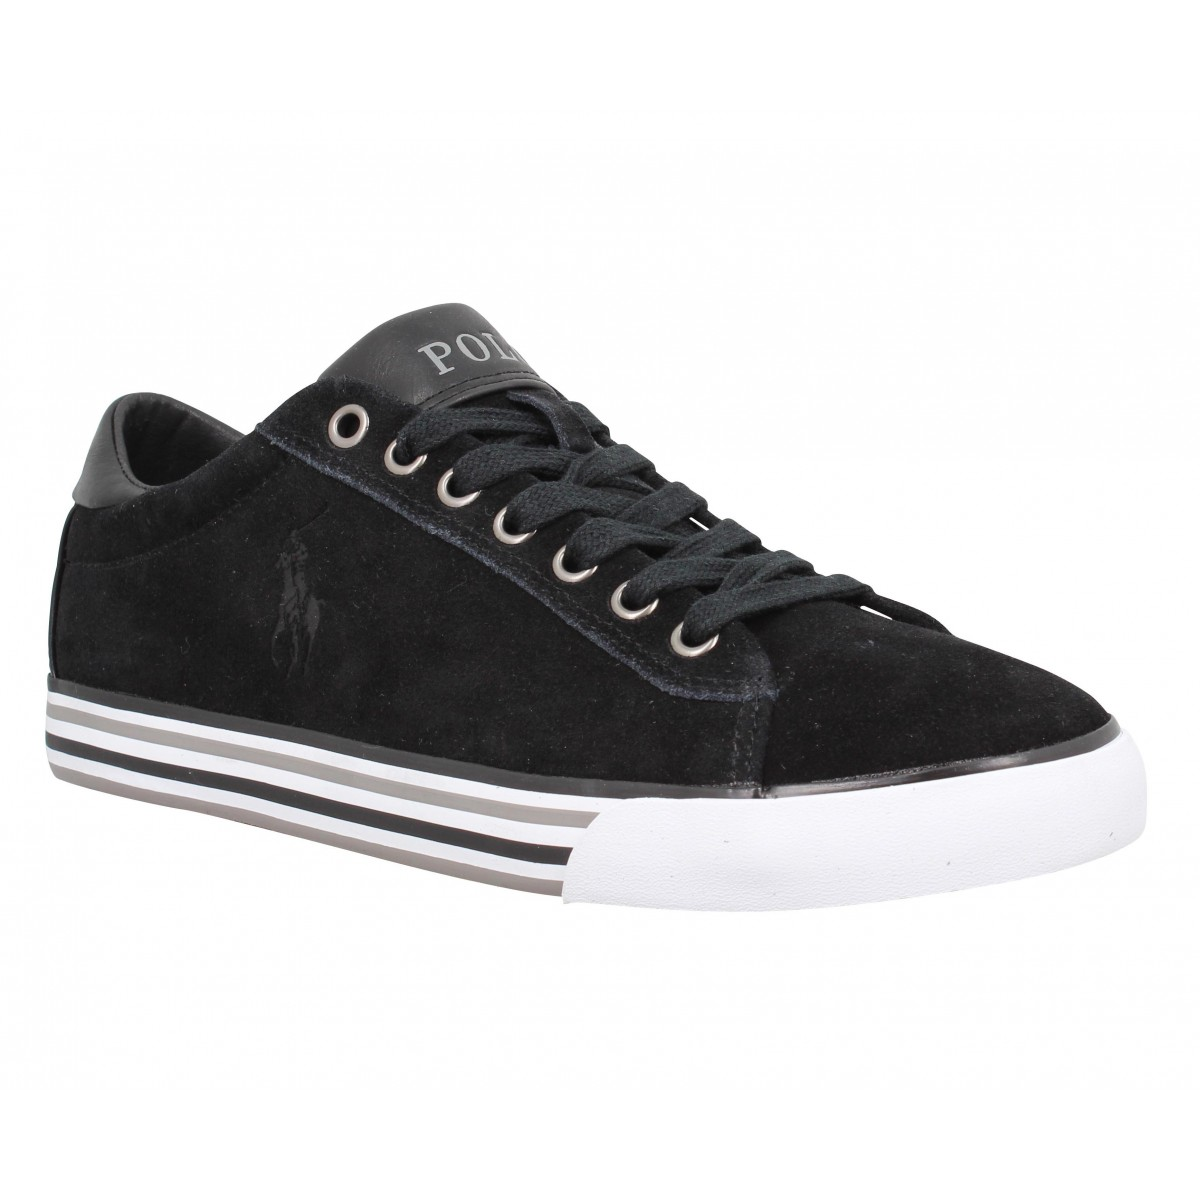 Baskets POLO RALPH LAUREN Harvey velours Homme Noir